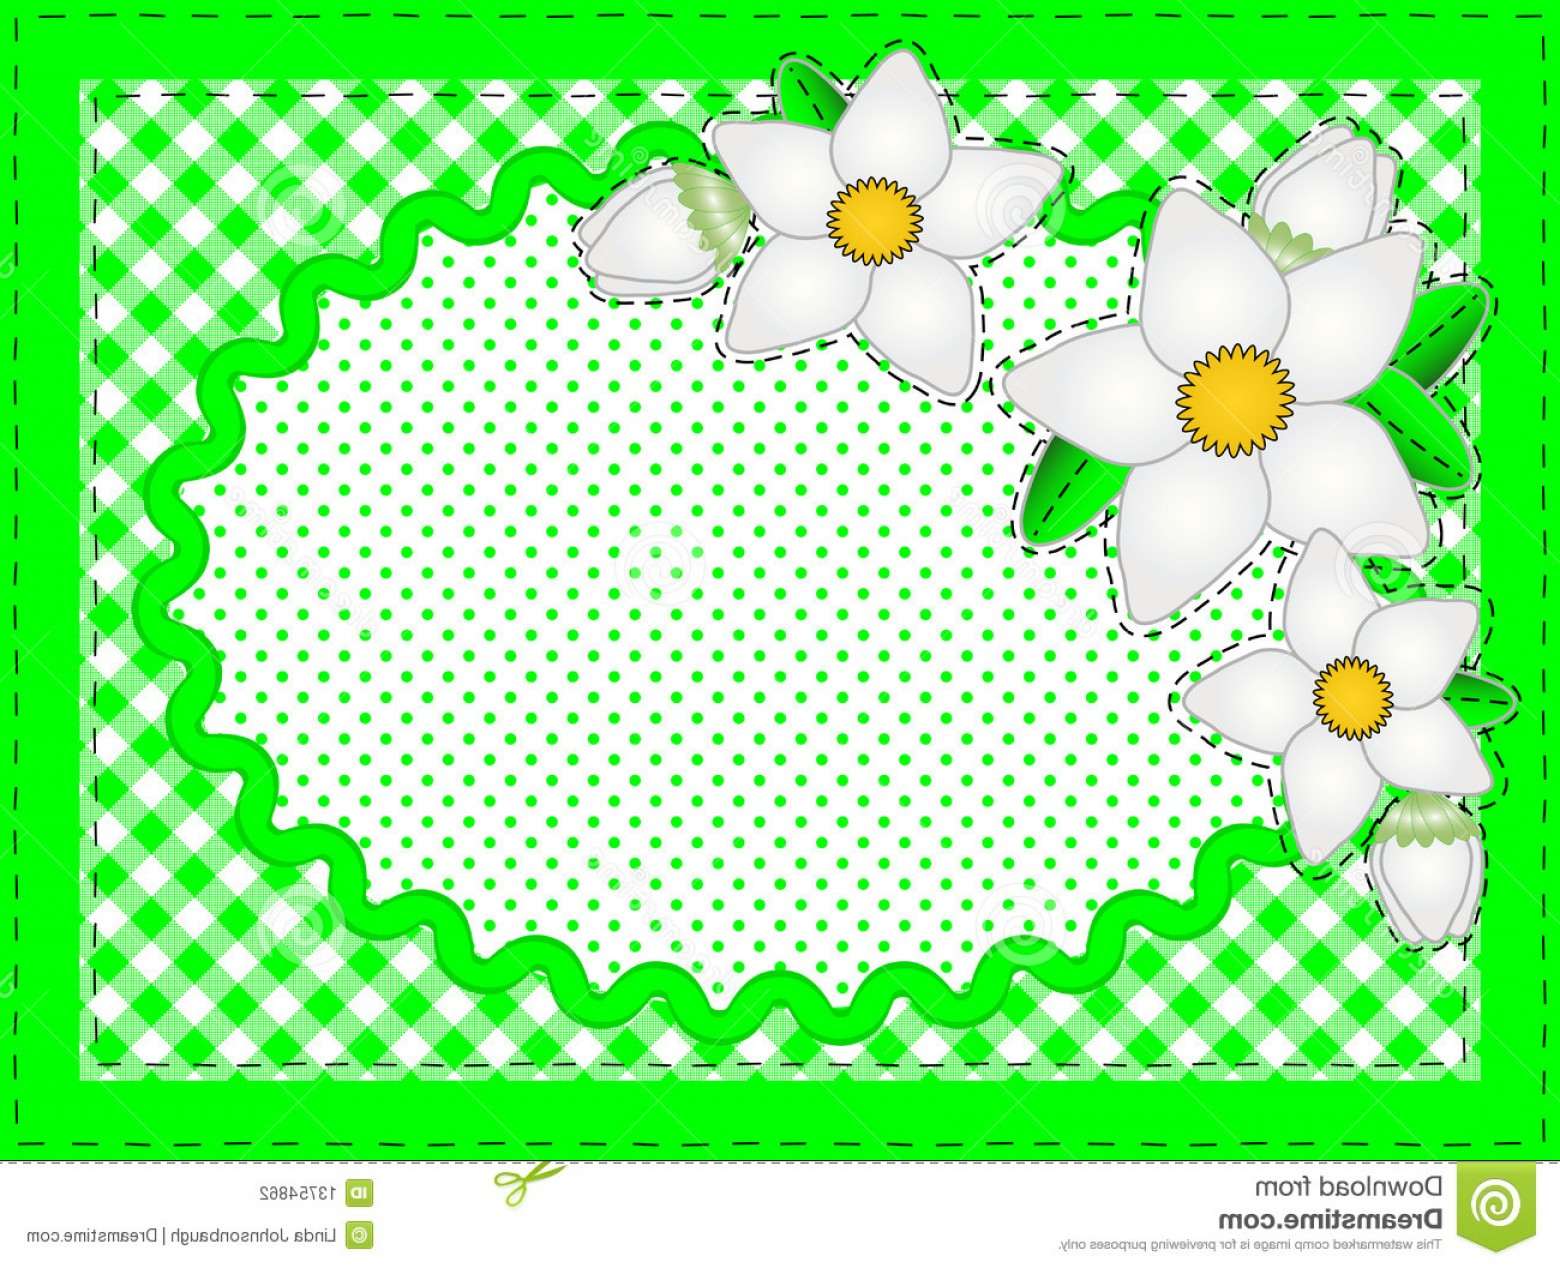 Green Oval Border Vector: Stock Photography Vector Oval Border Flowers Copy Space Image